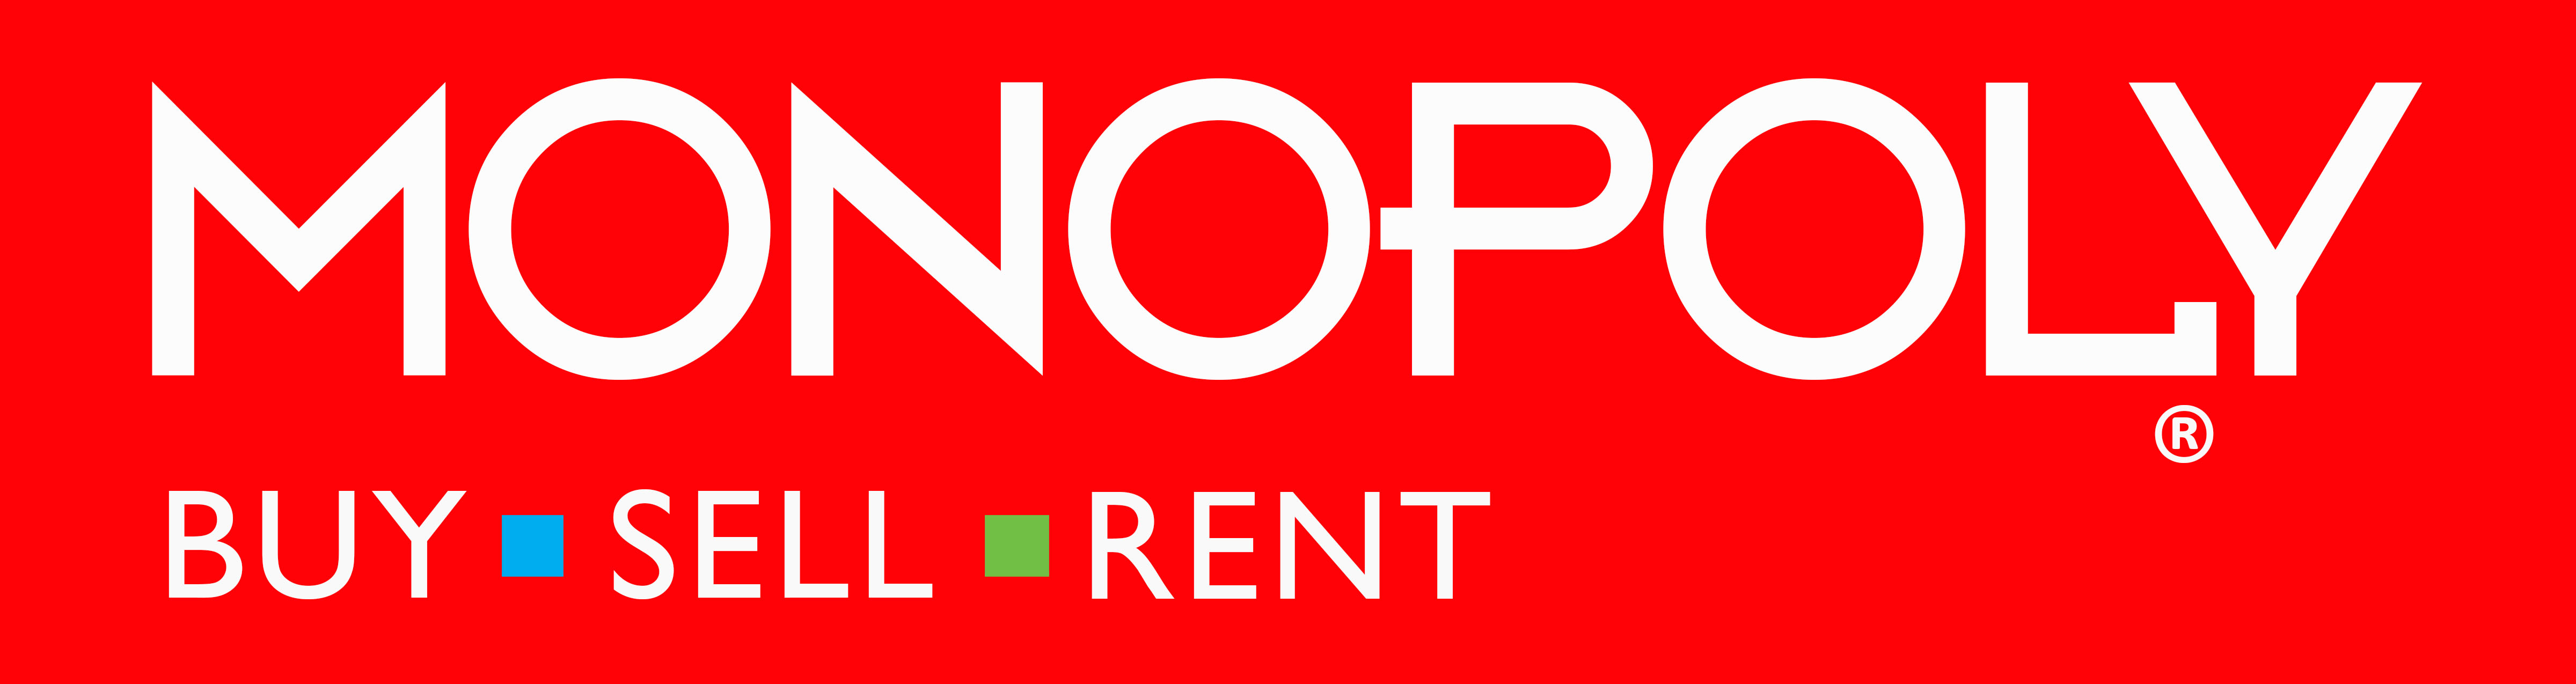 Monopoly Buy Sell Rent